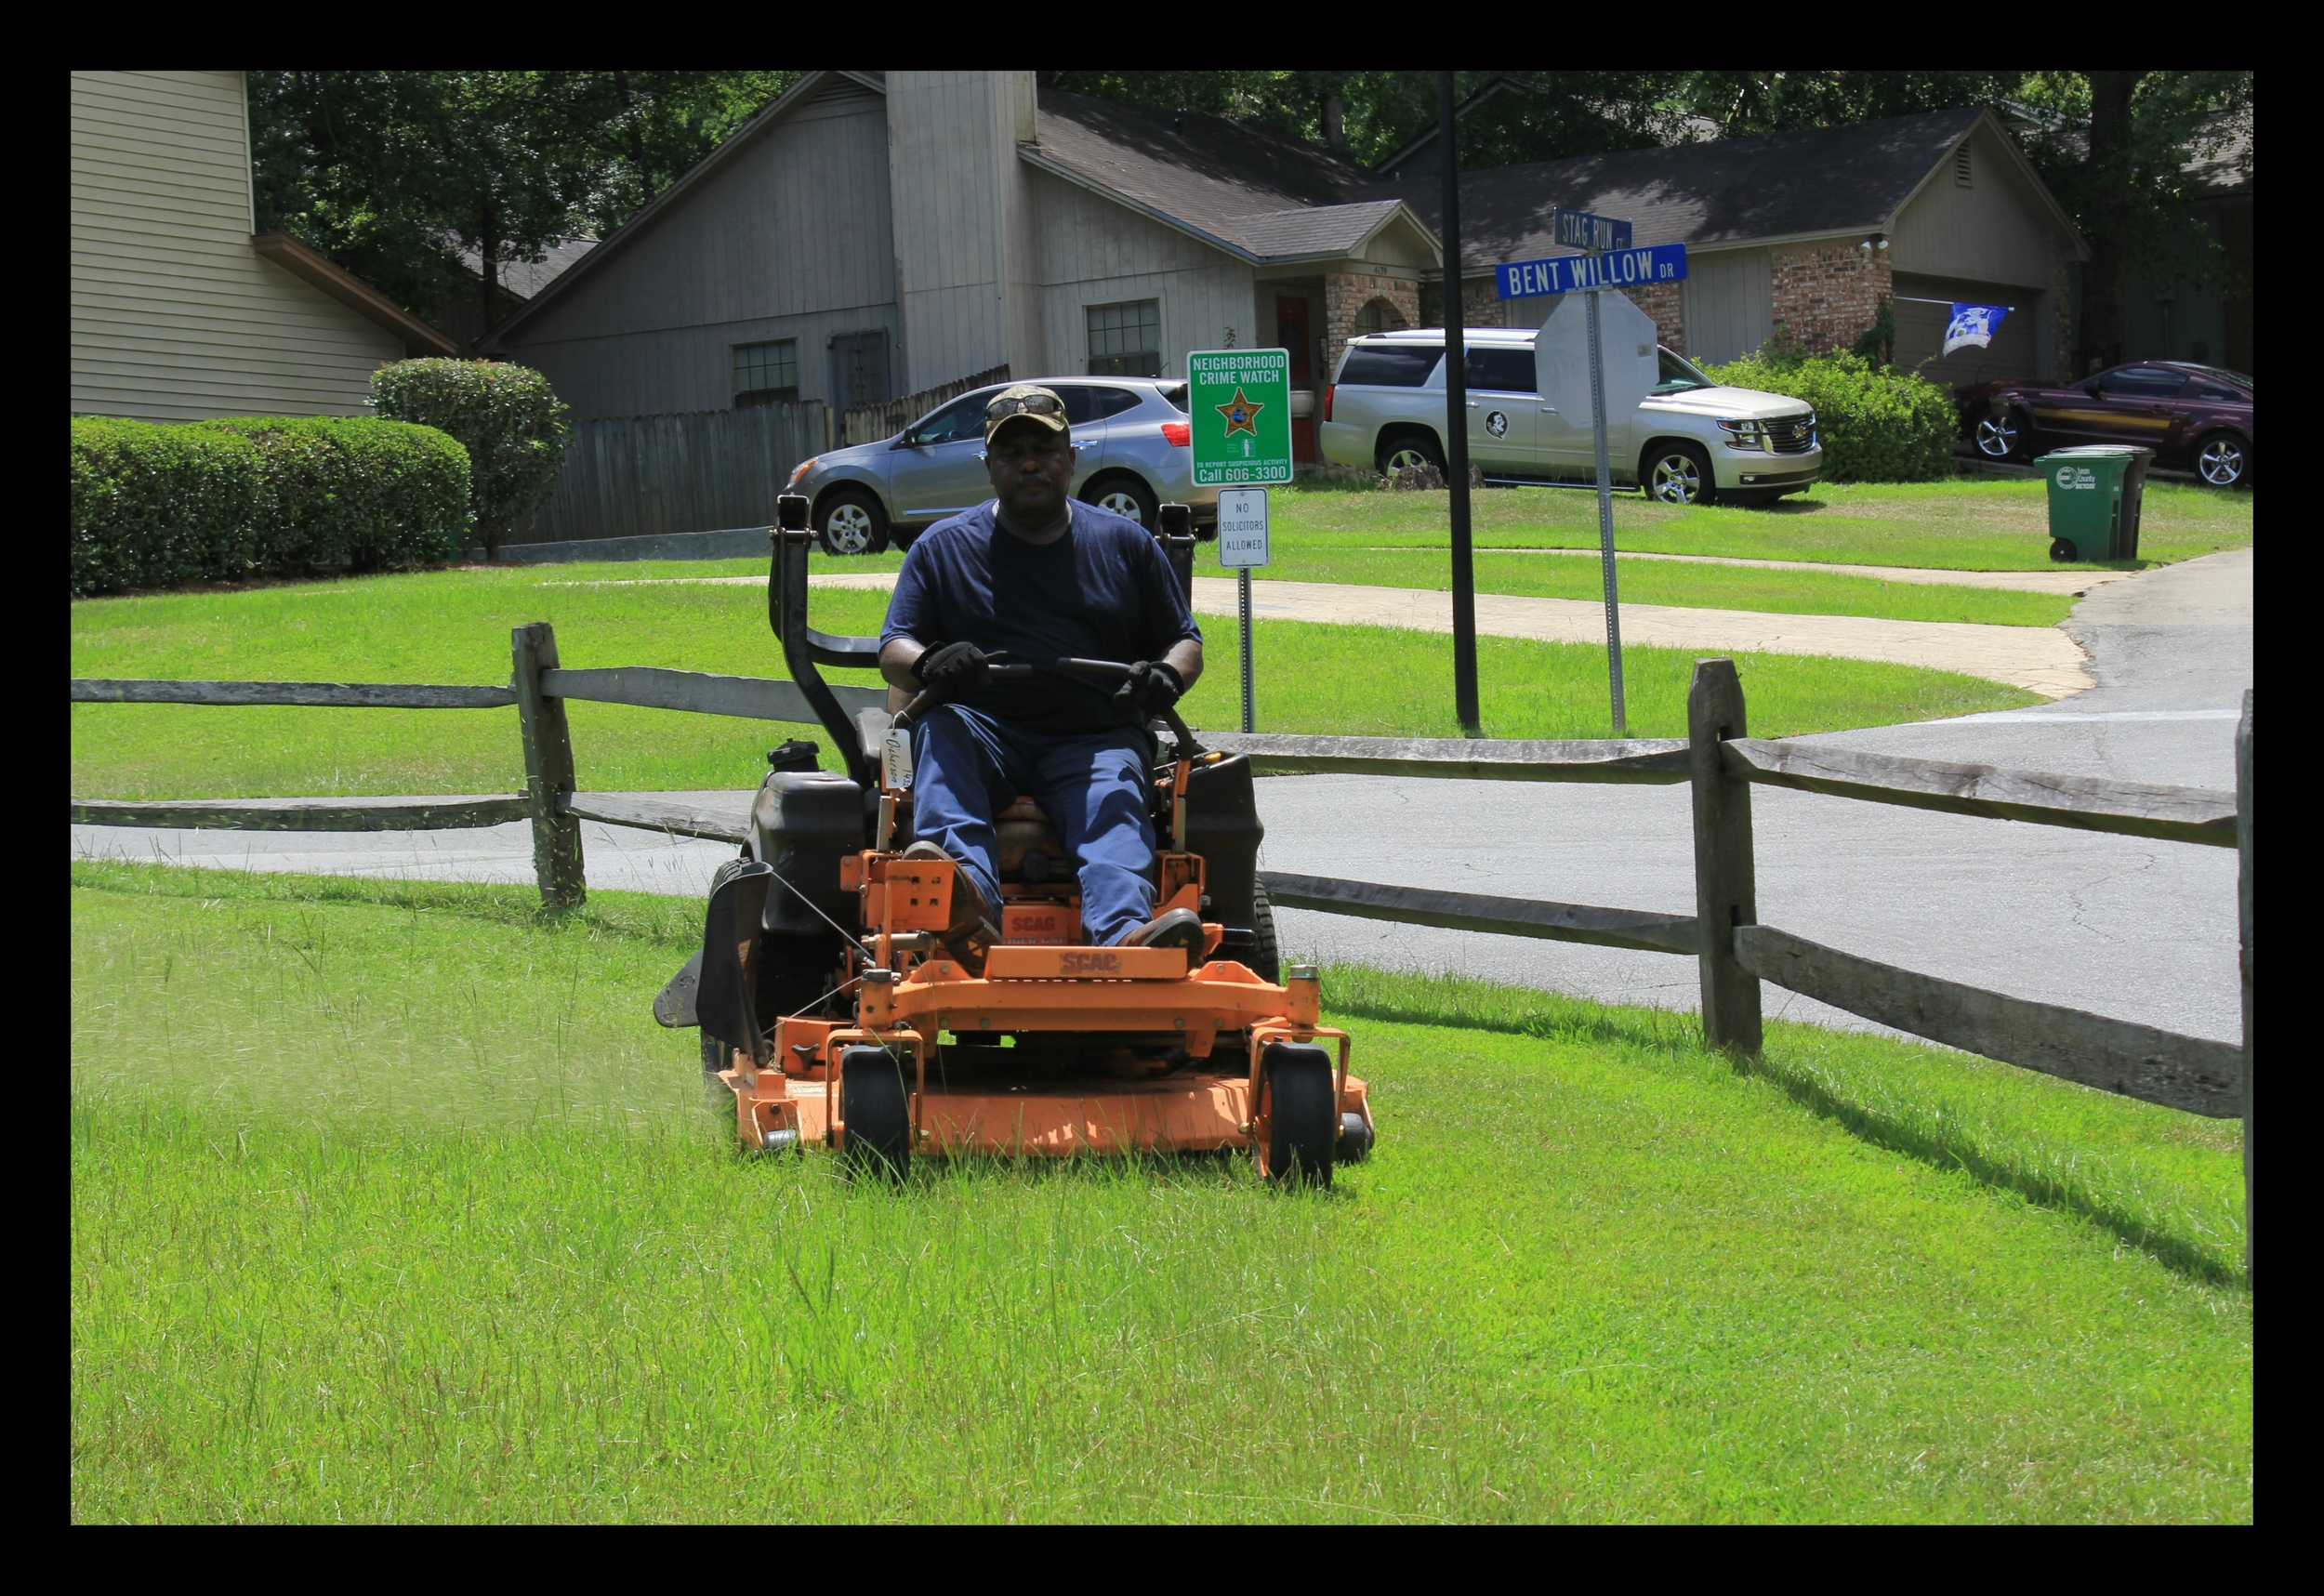 Tallahassee Lawn Care Crew member